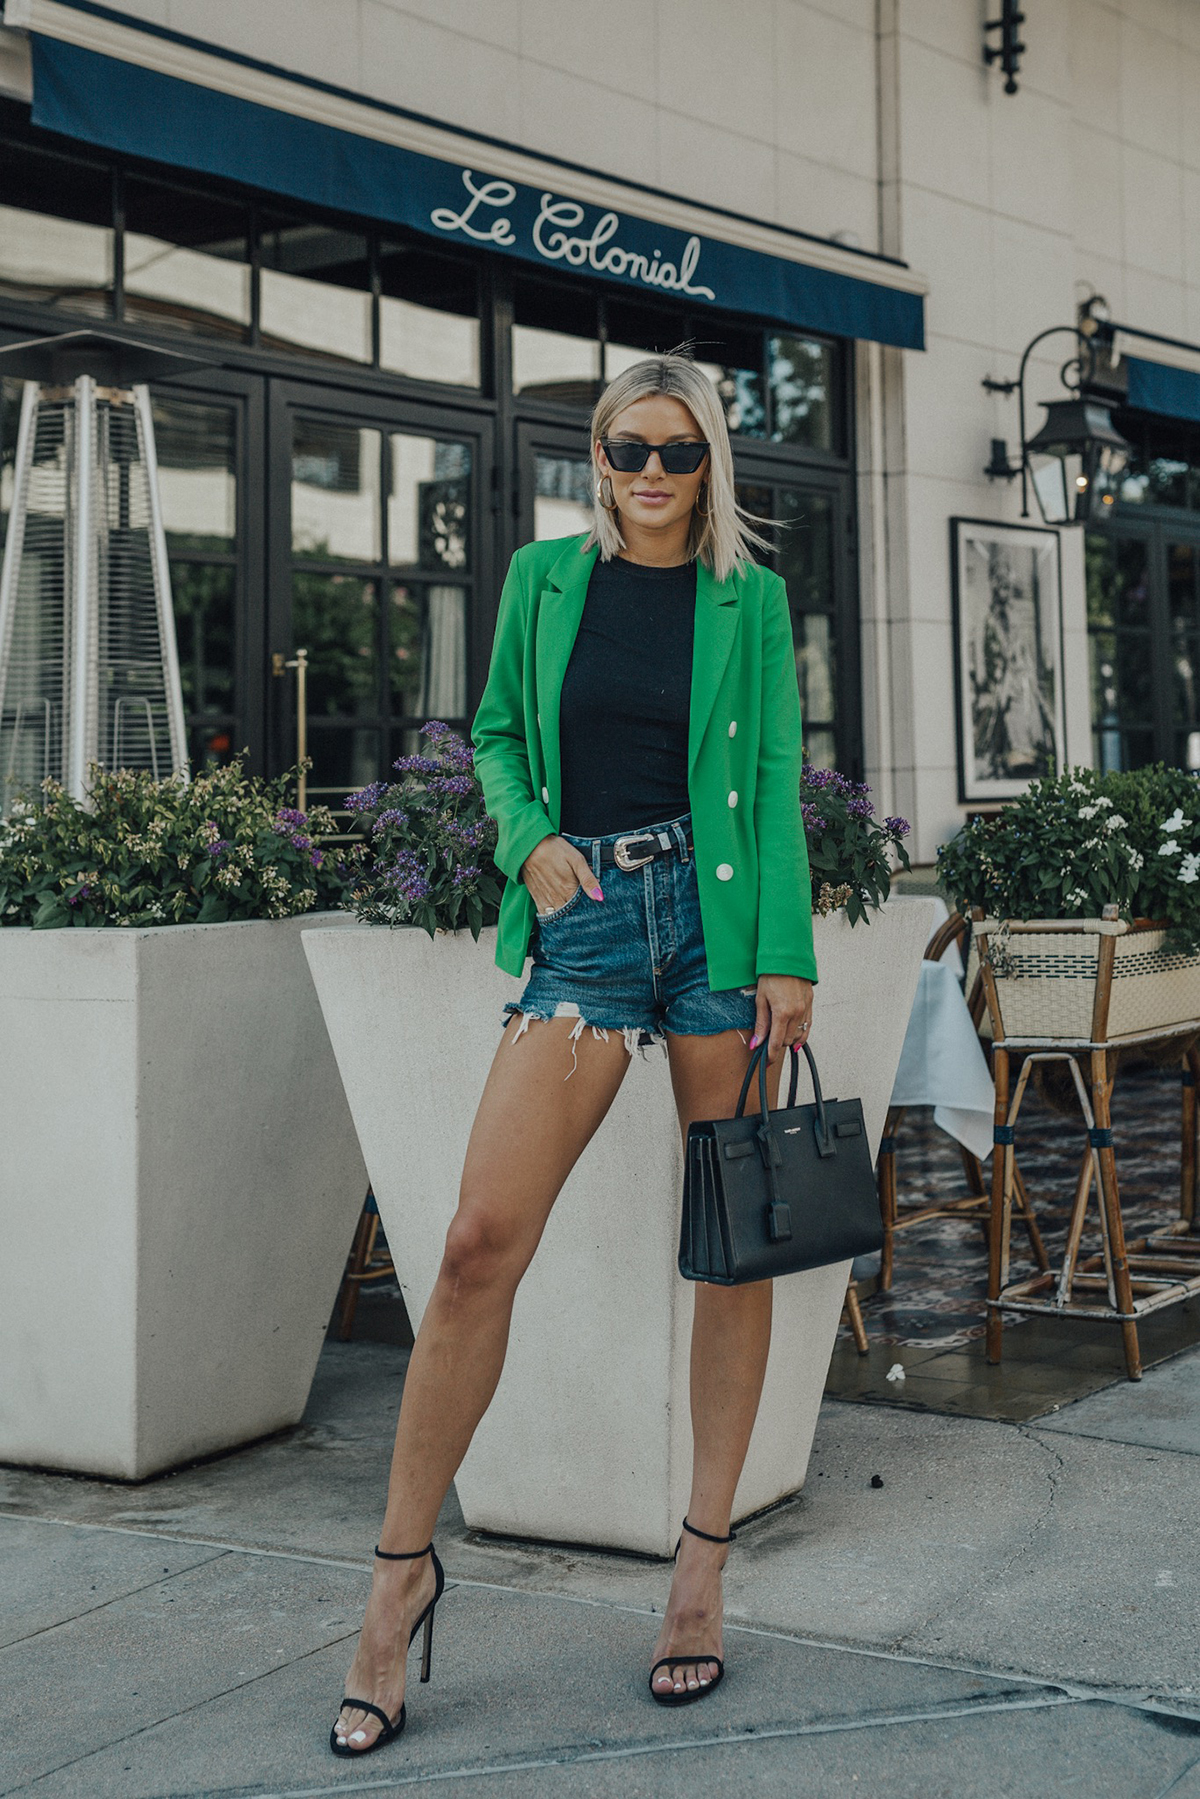 lessons blogger Sage Coralli has learned from being her own boss